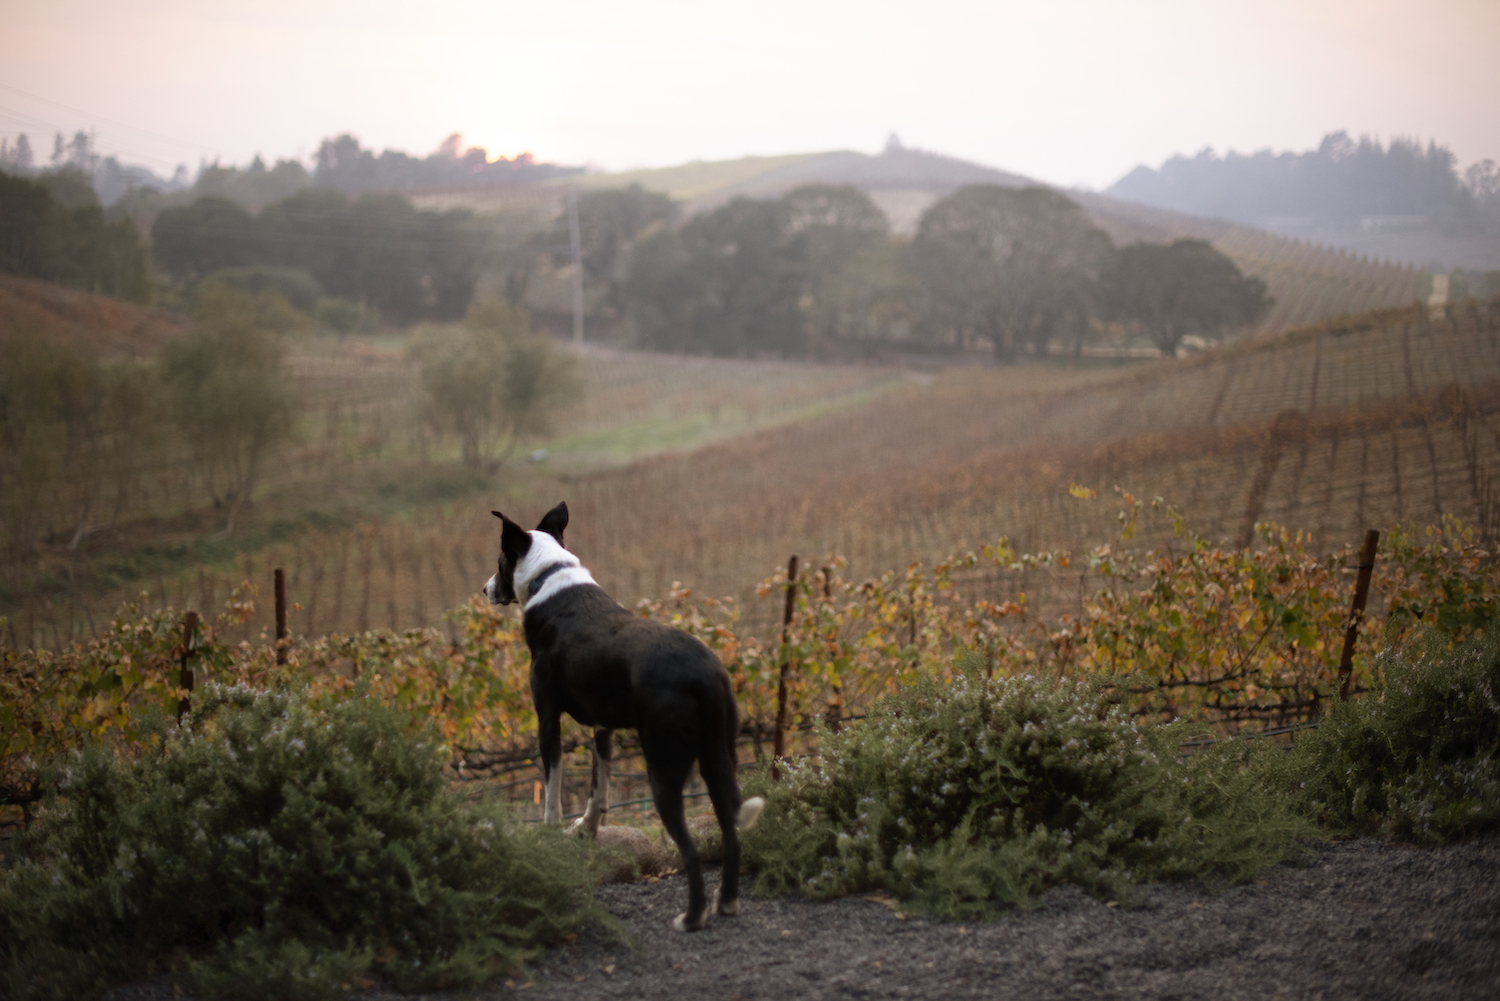 Pinot, Pinot Noir, Littorai, biodynamic farming, winery dog, Sonoma County, Sonoma, California, Wine Country, The Press